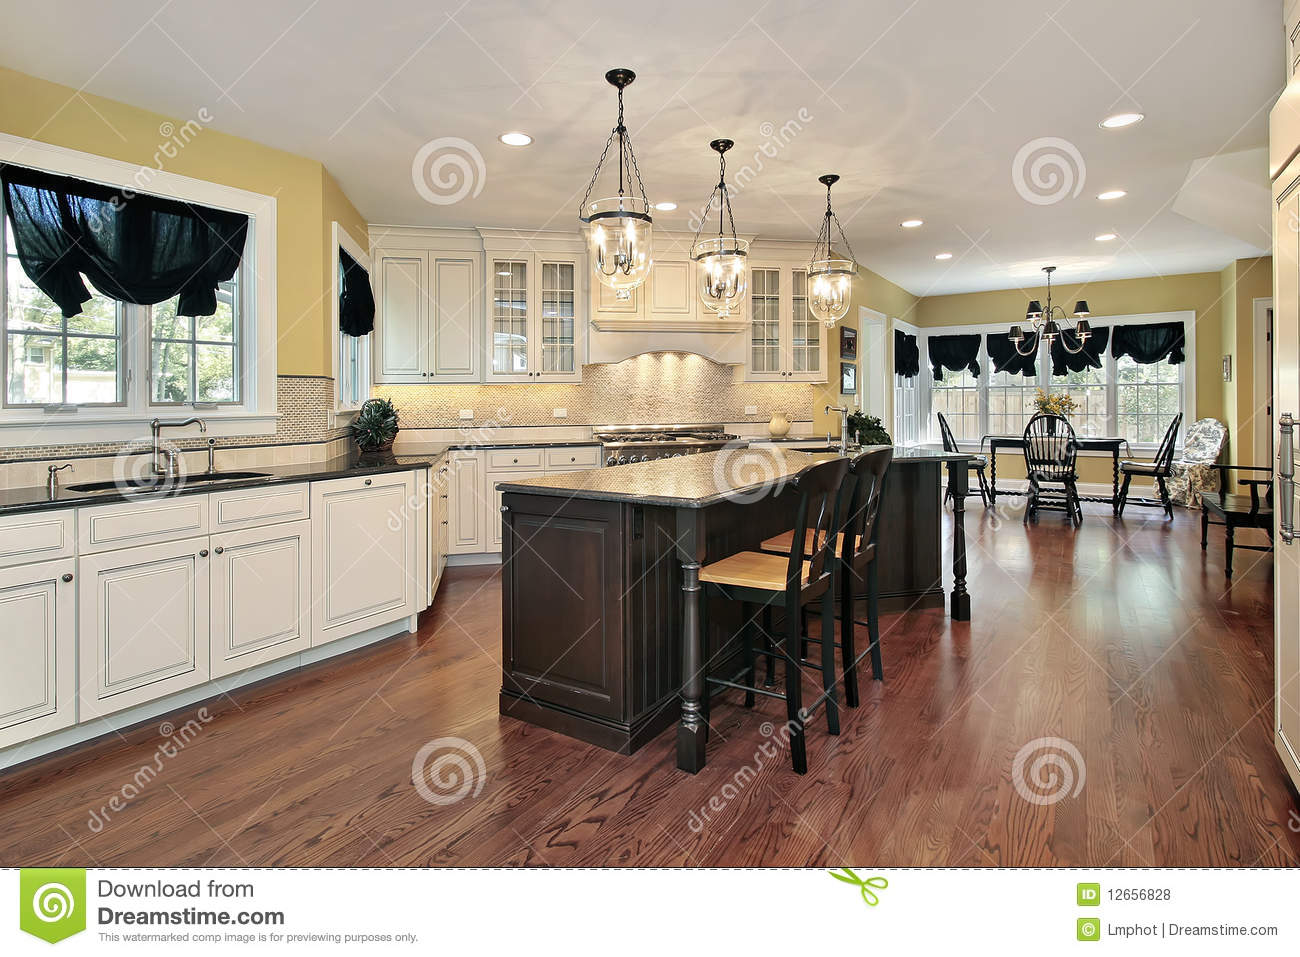 Kitchen with island and eating area royalty free stock photos image 12656828 for Eat in kitchen designs for small kitchen